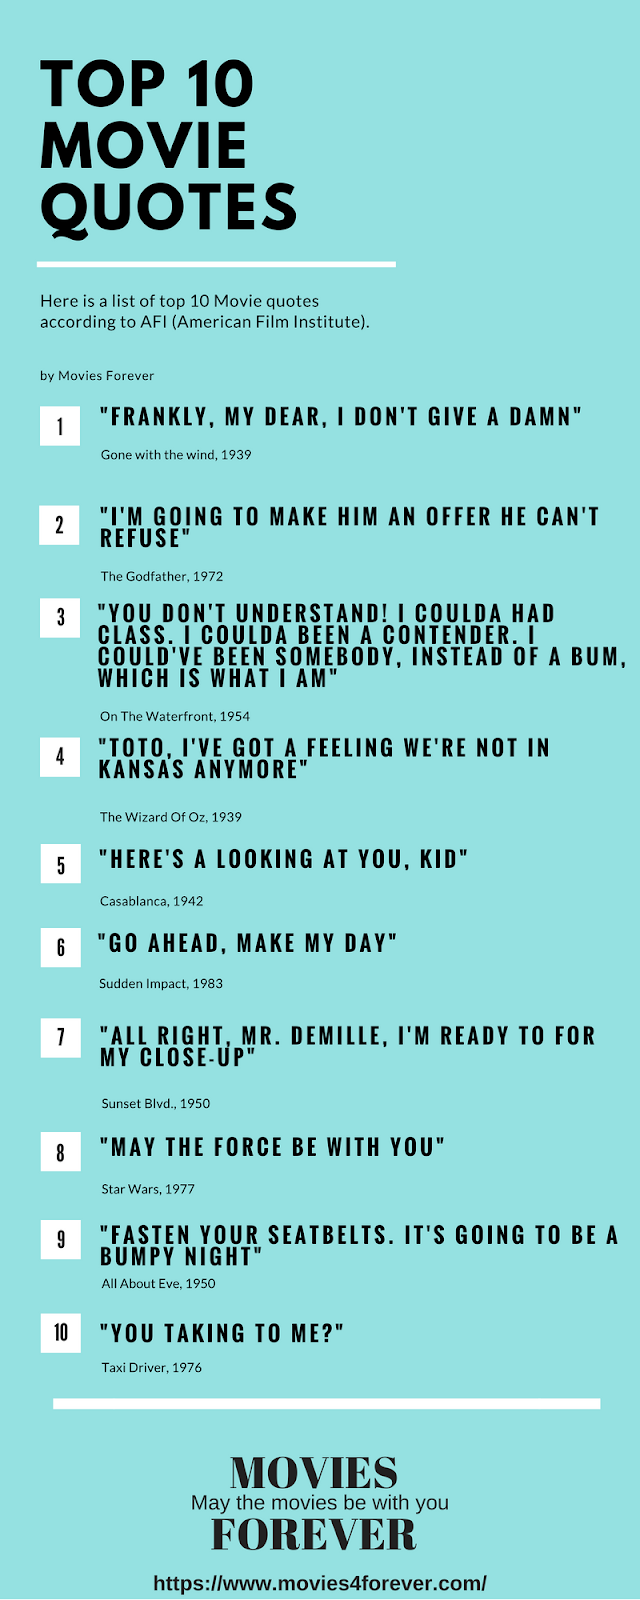 Top 10 movies quotes